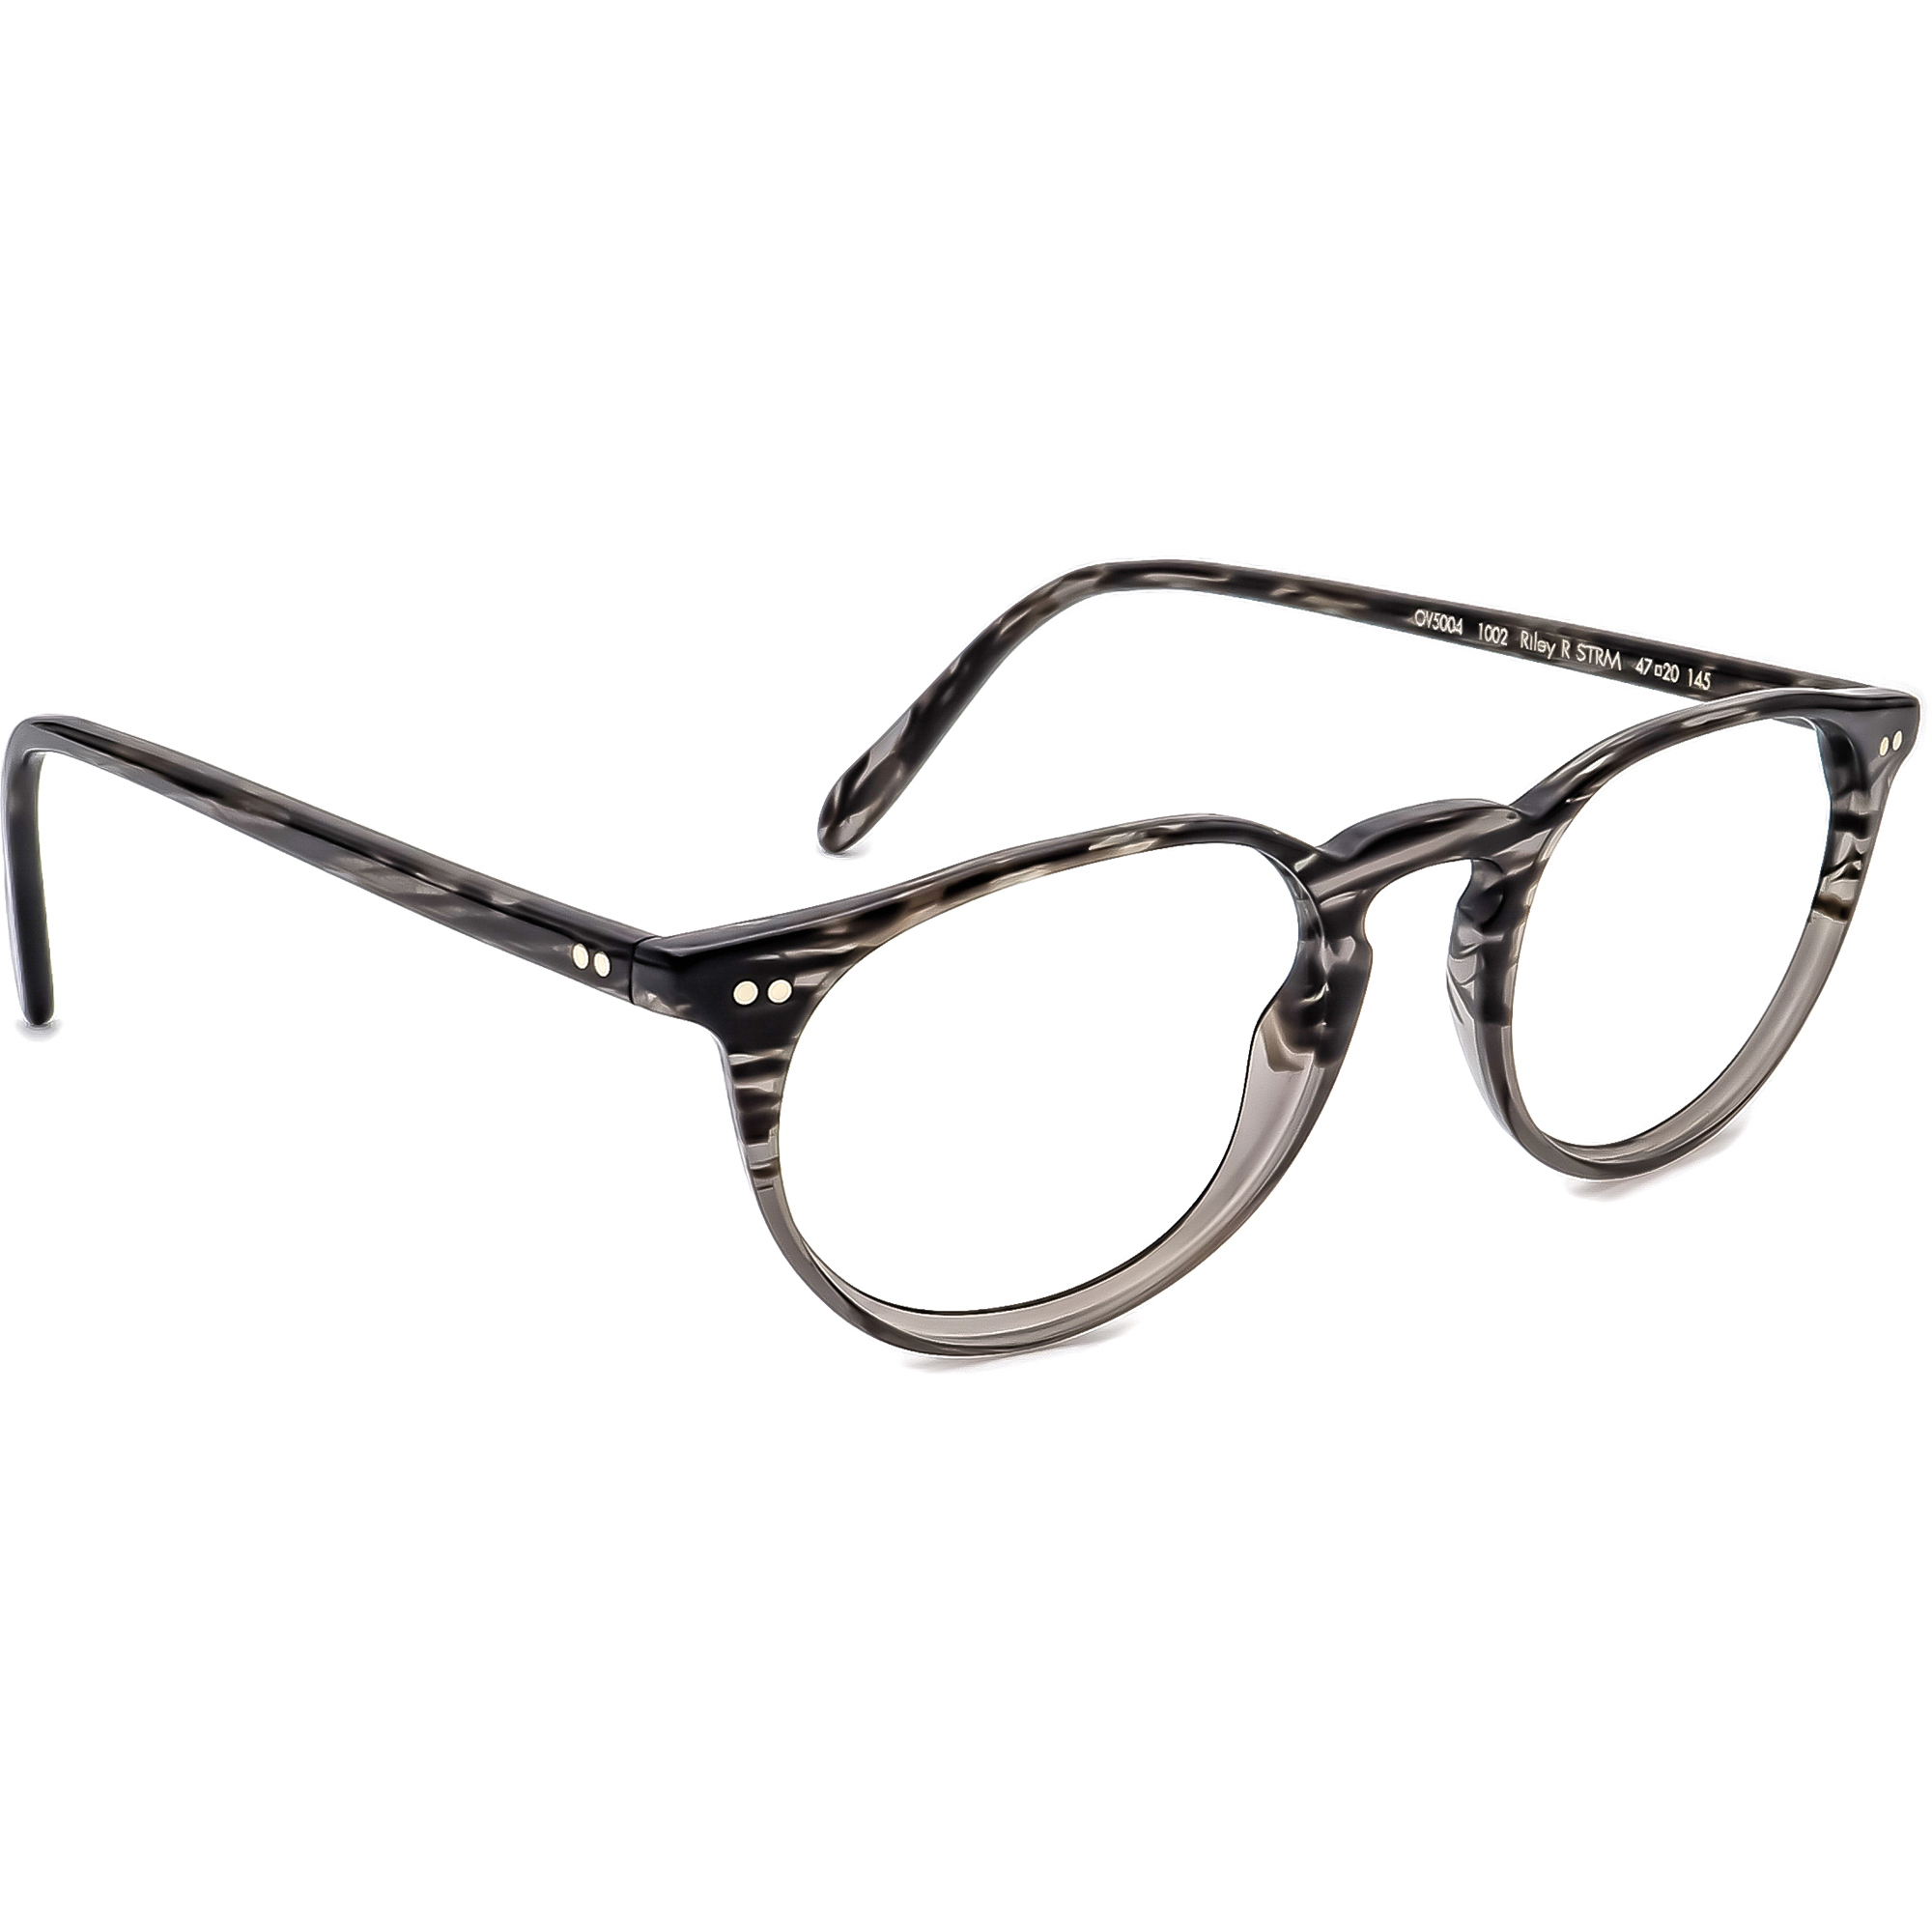 Oliver Peoples OV5004 1002 Riley R STRM Eyeglasses